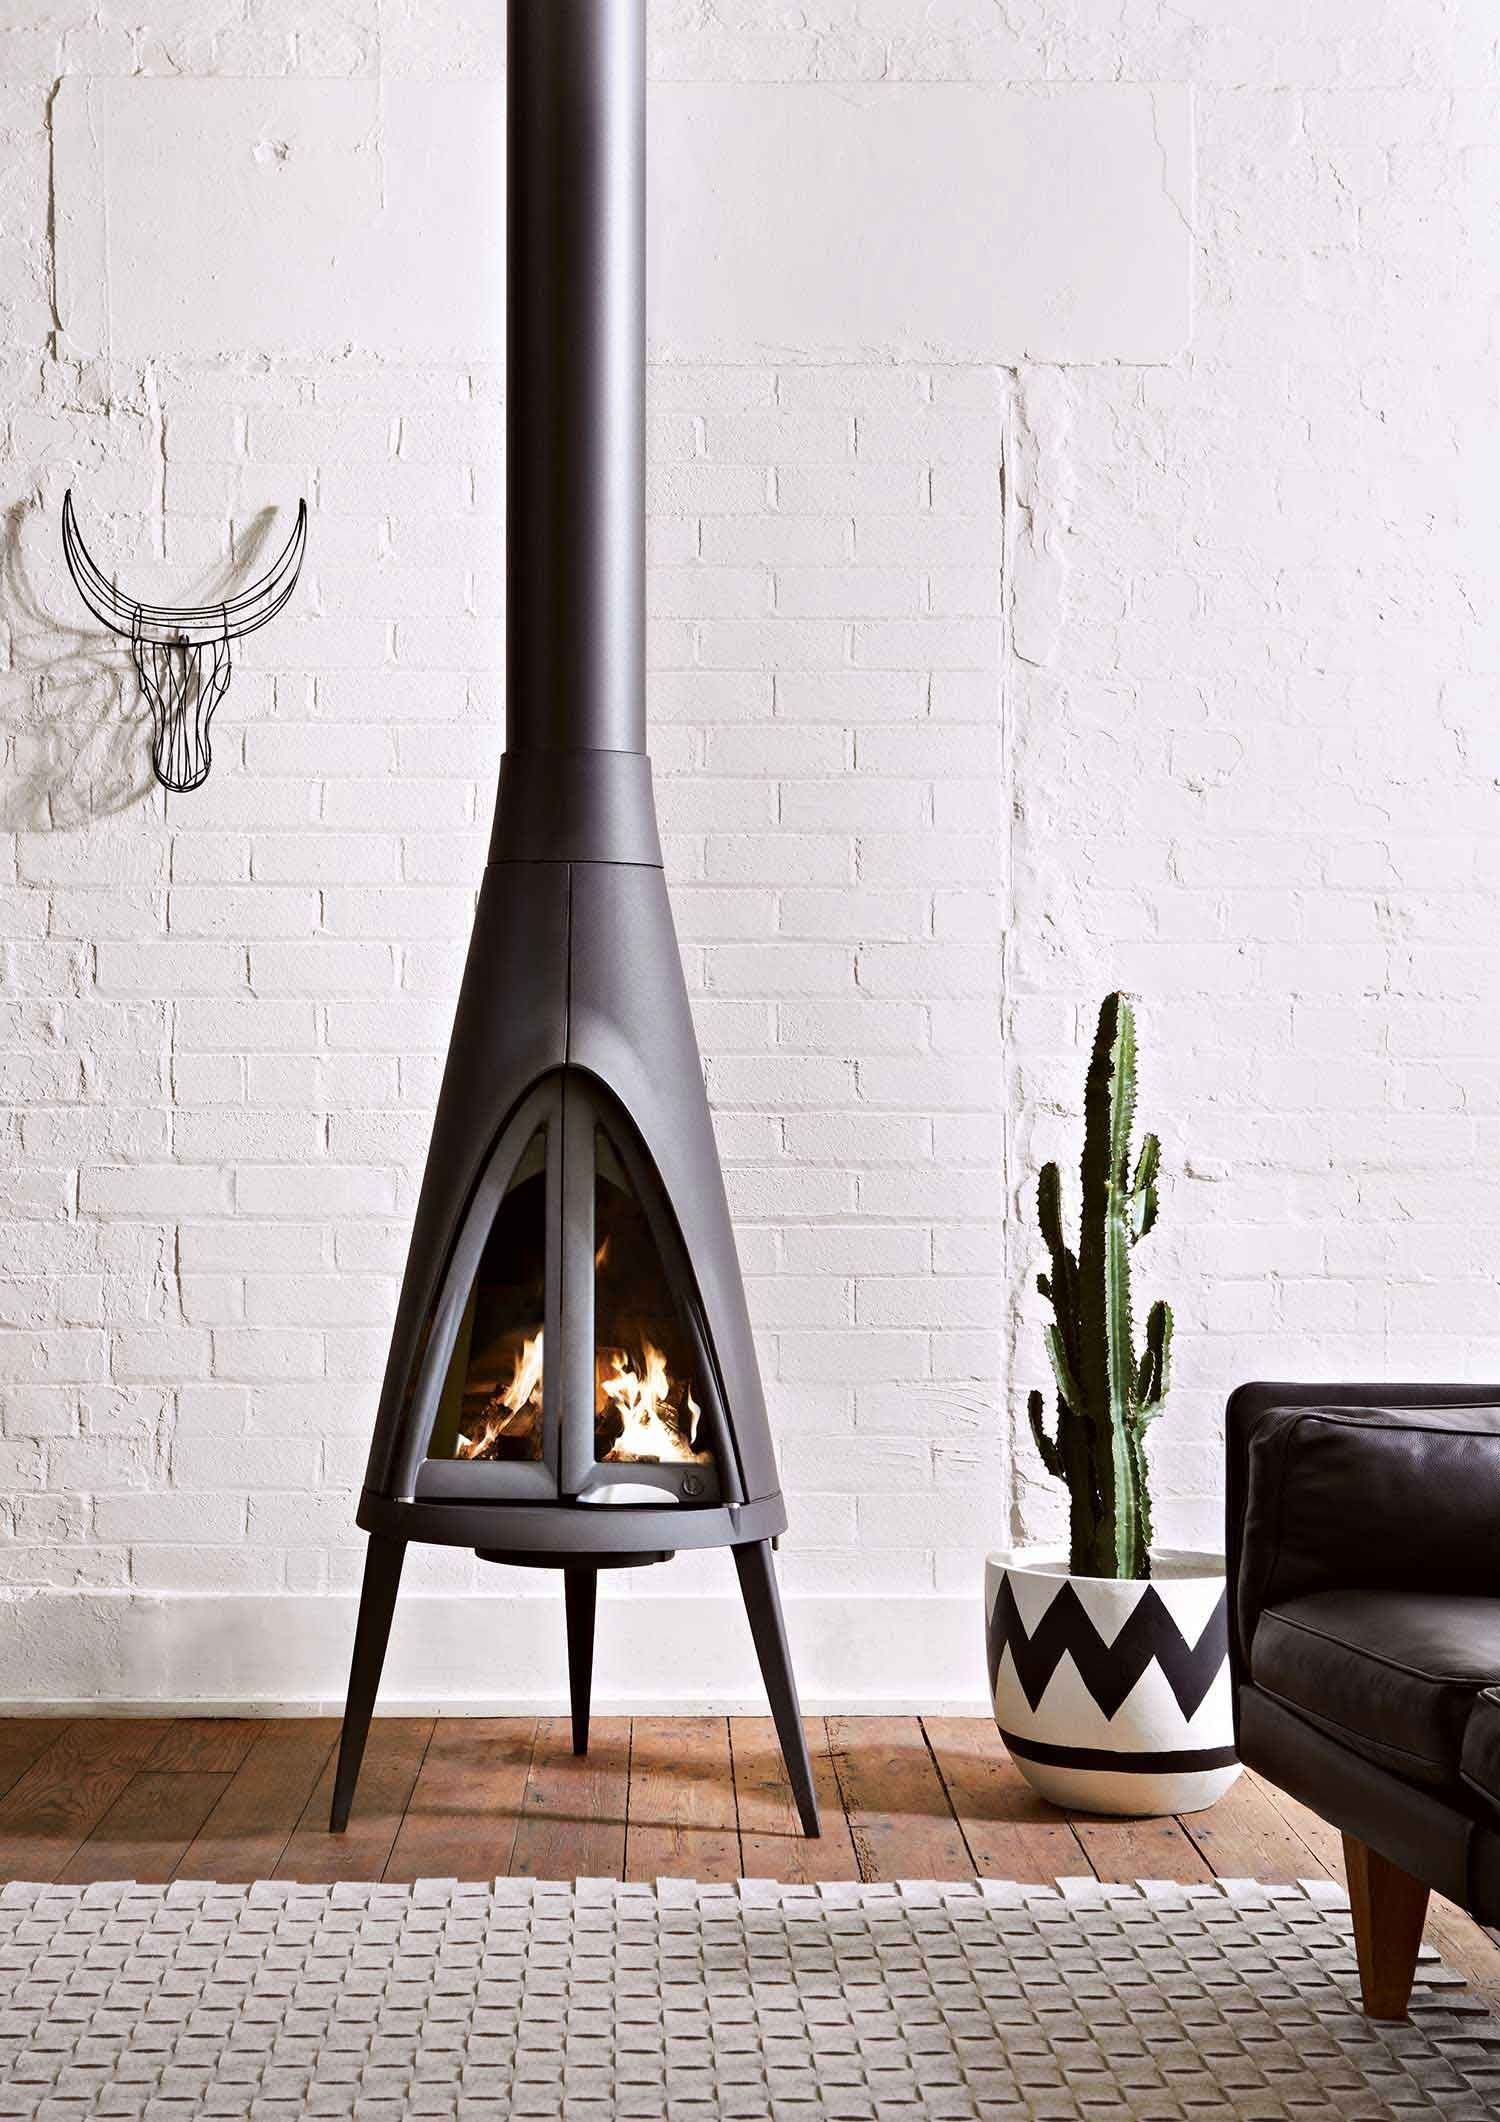 Fab Tiny Wood Burning Stove, From Oblica Catalogue, Photo By Armelle Habib |